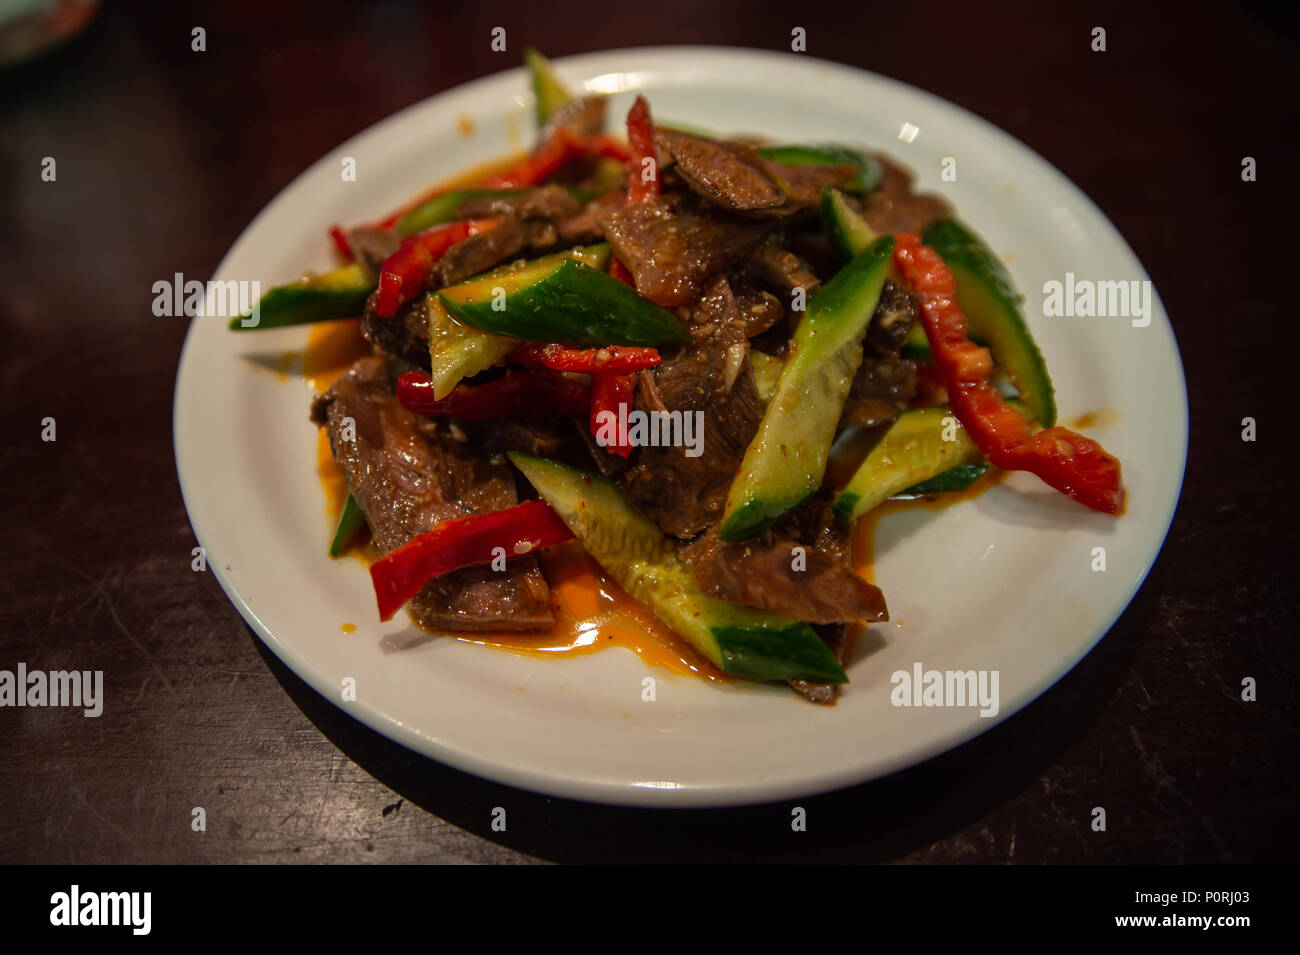 Uyghur Cuisine: beef salad, sliced beef with fresh cucumber, red peppers and chili oil Stock Photo